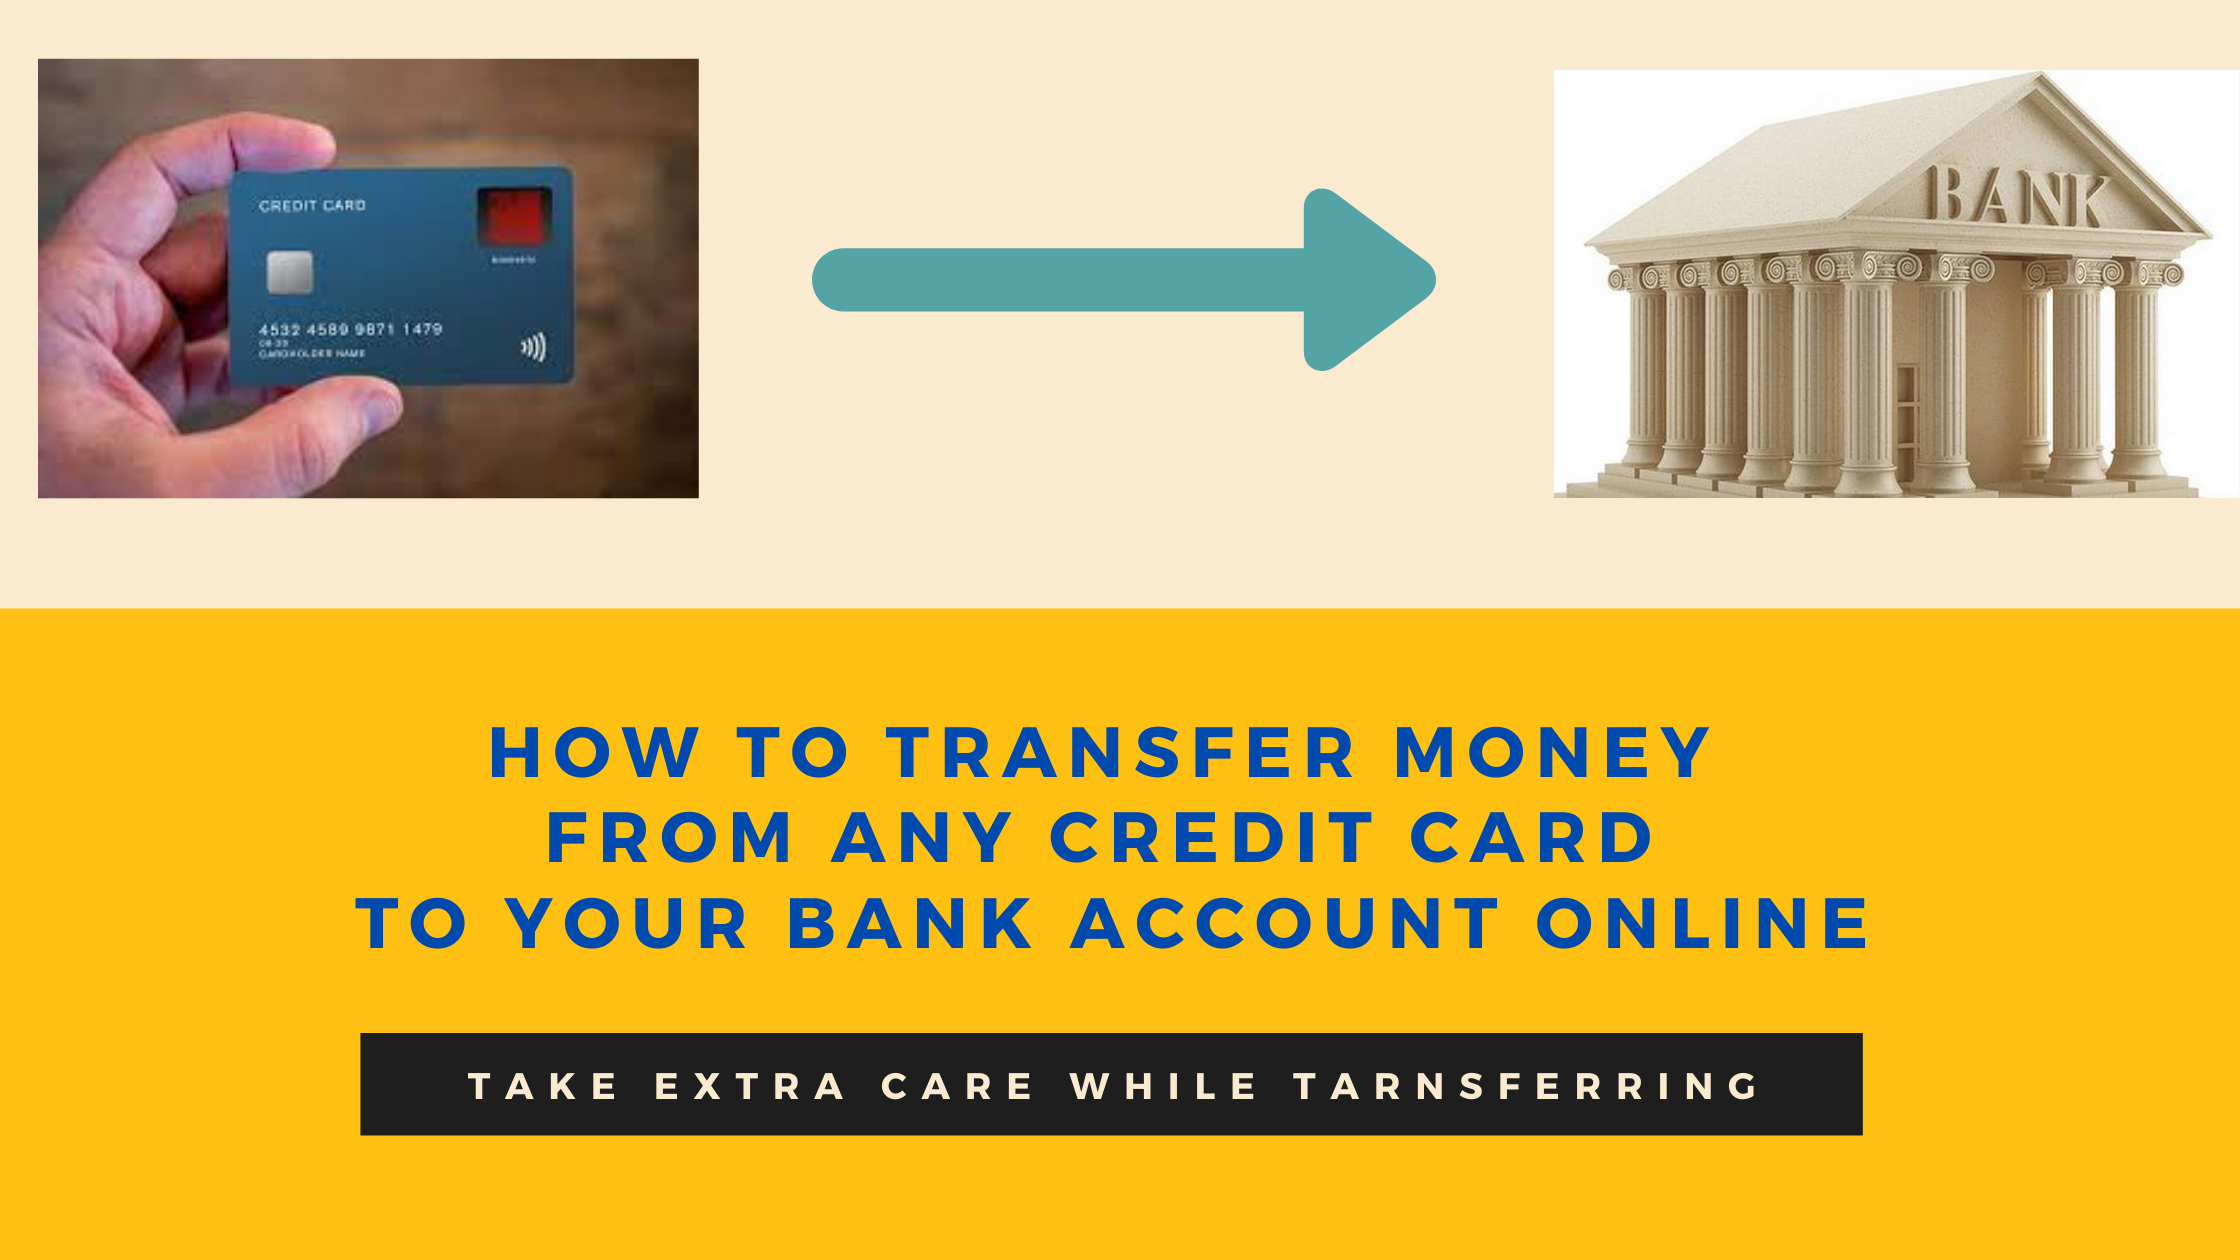 How to transfer money from any credit card to your bank account online